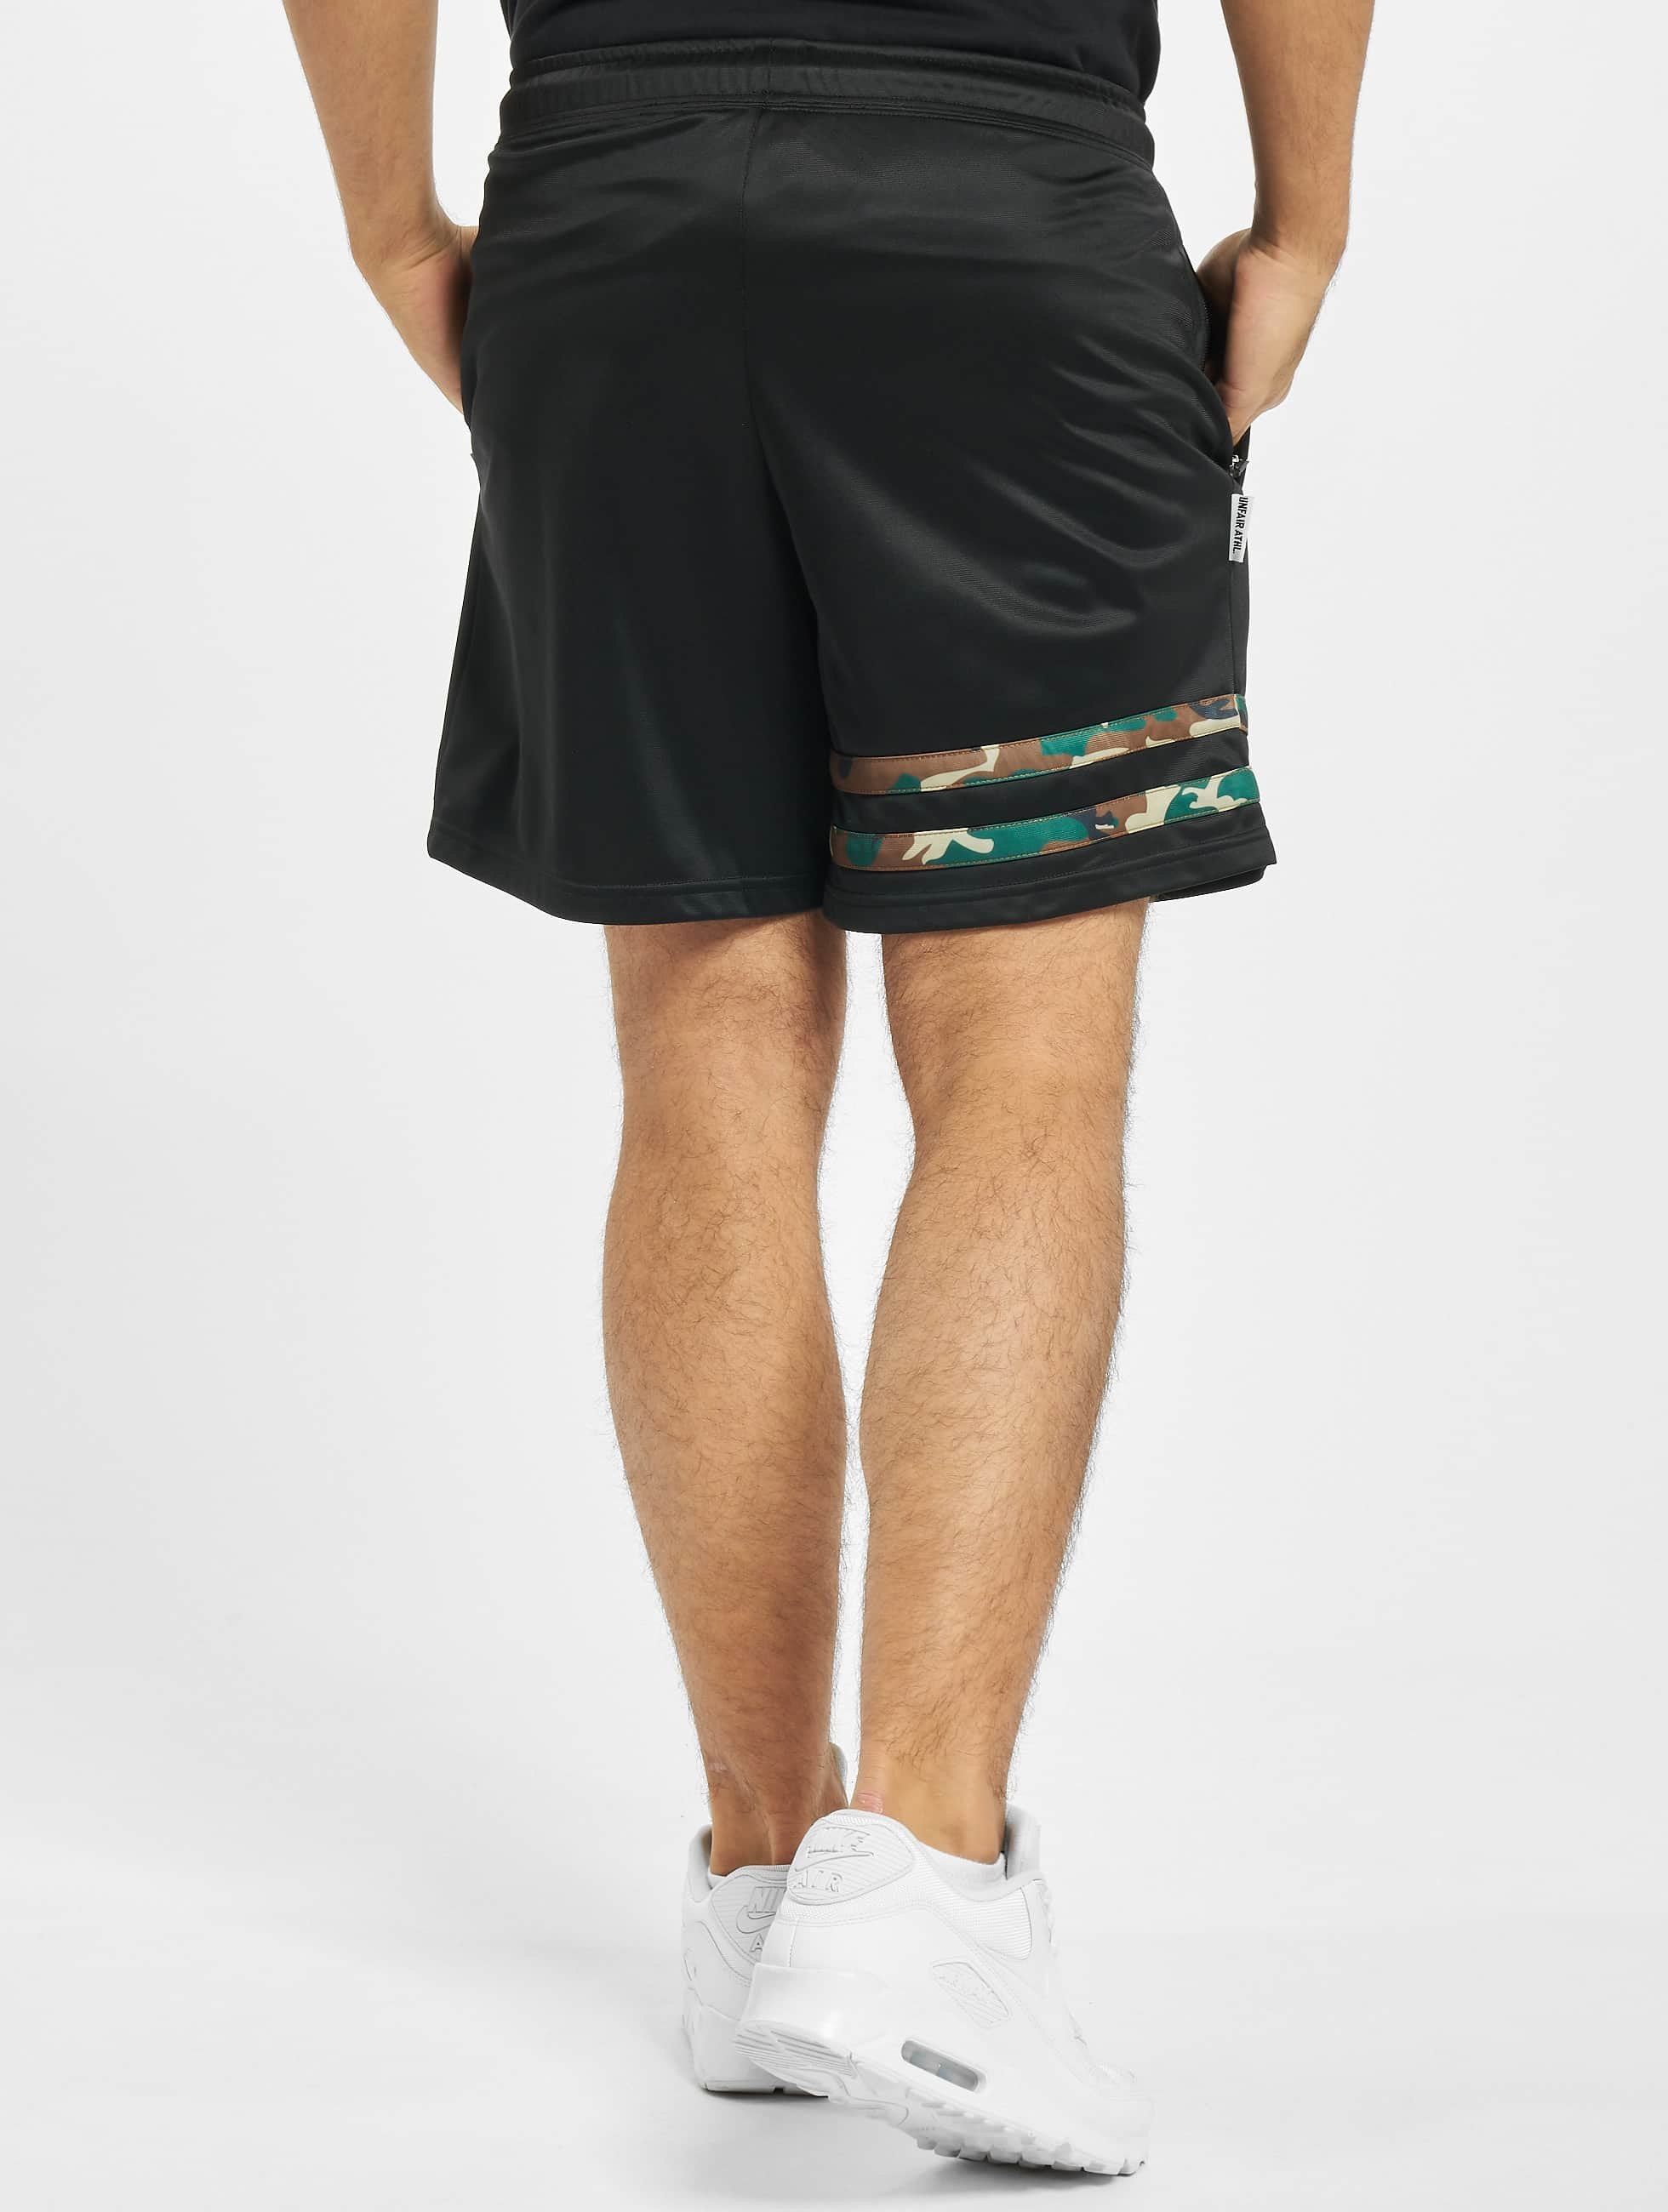 UNFAIR ATHLETICS Short DMWU black